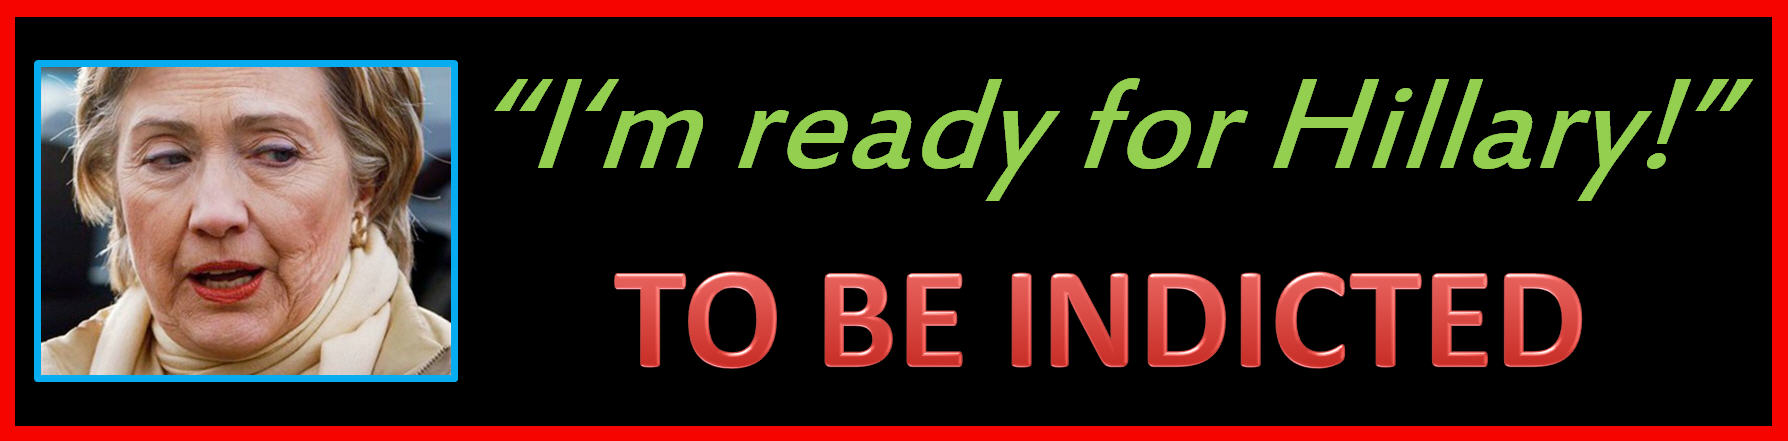 Hillary Ready 2B Indicted Bumper Sticker